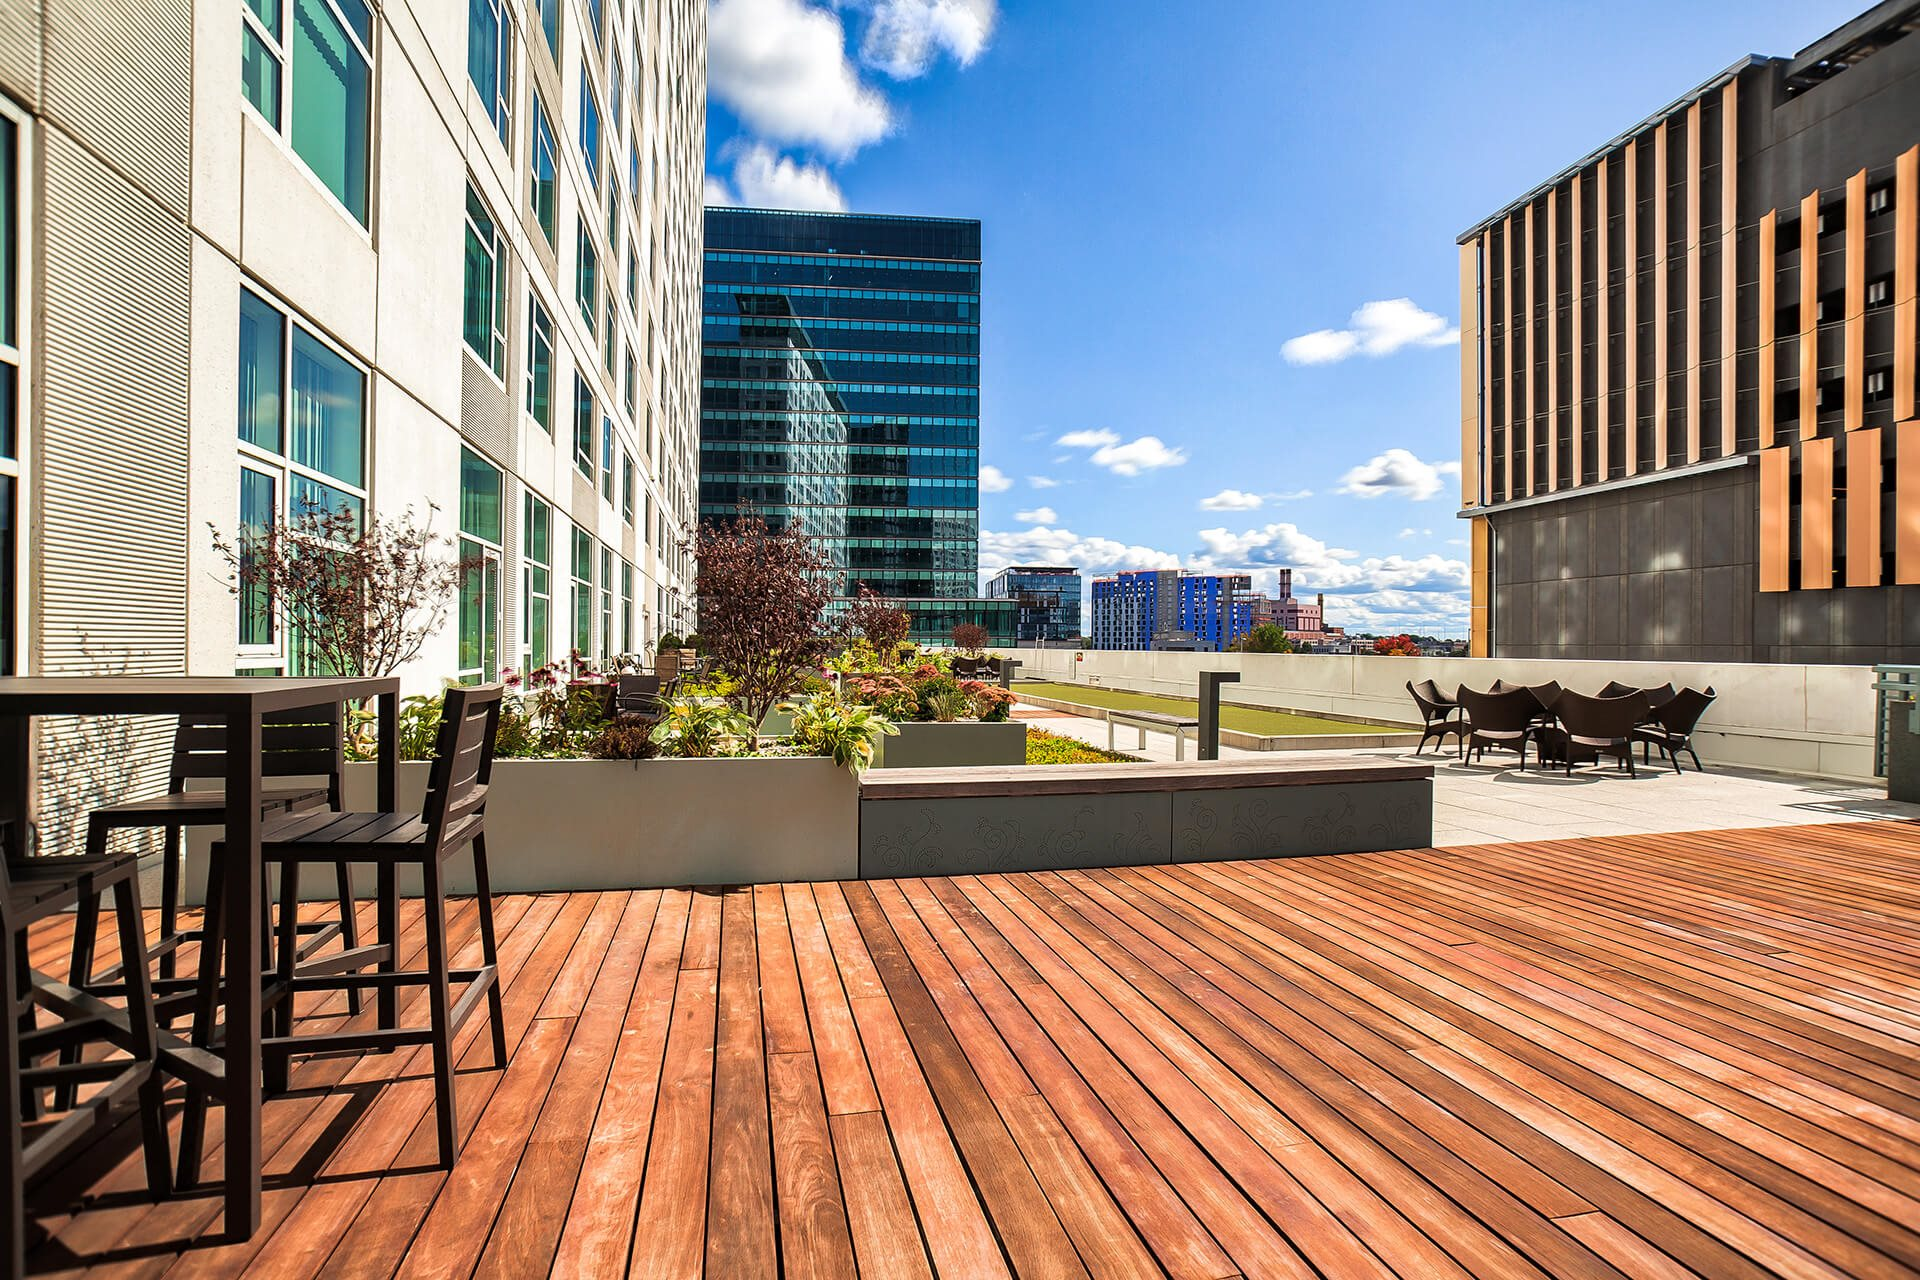 Outdoor living spaces at Waterside Place by Windsor, 505 Congress St, Boston